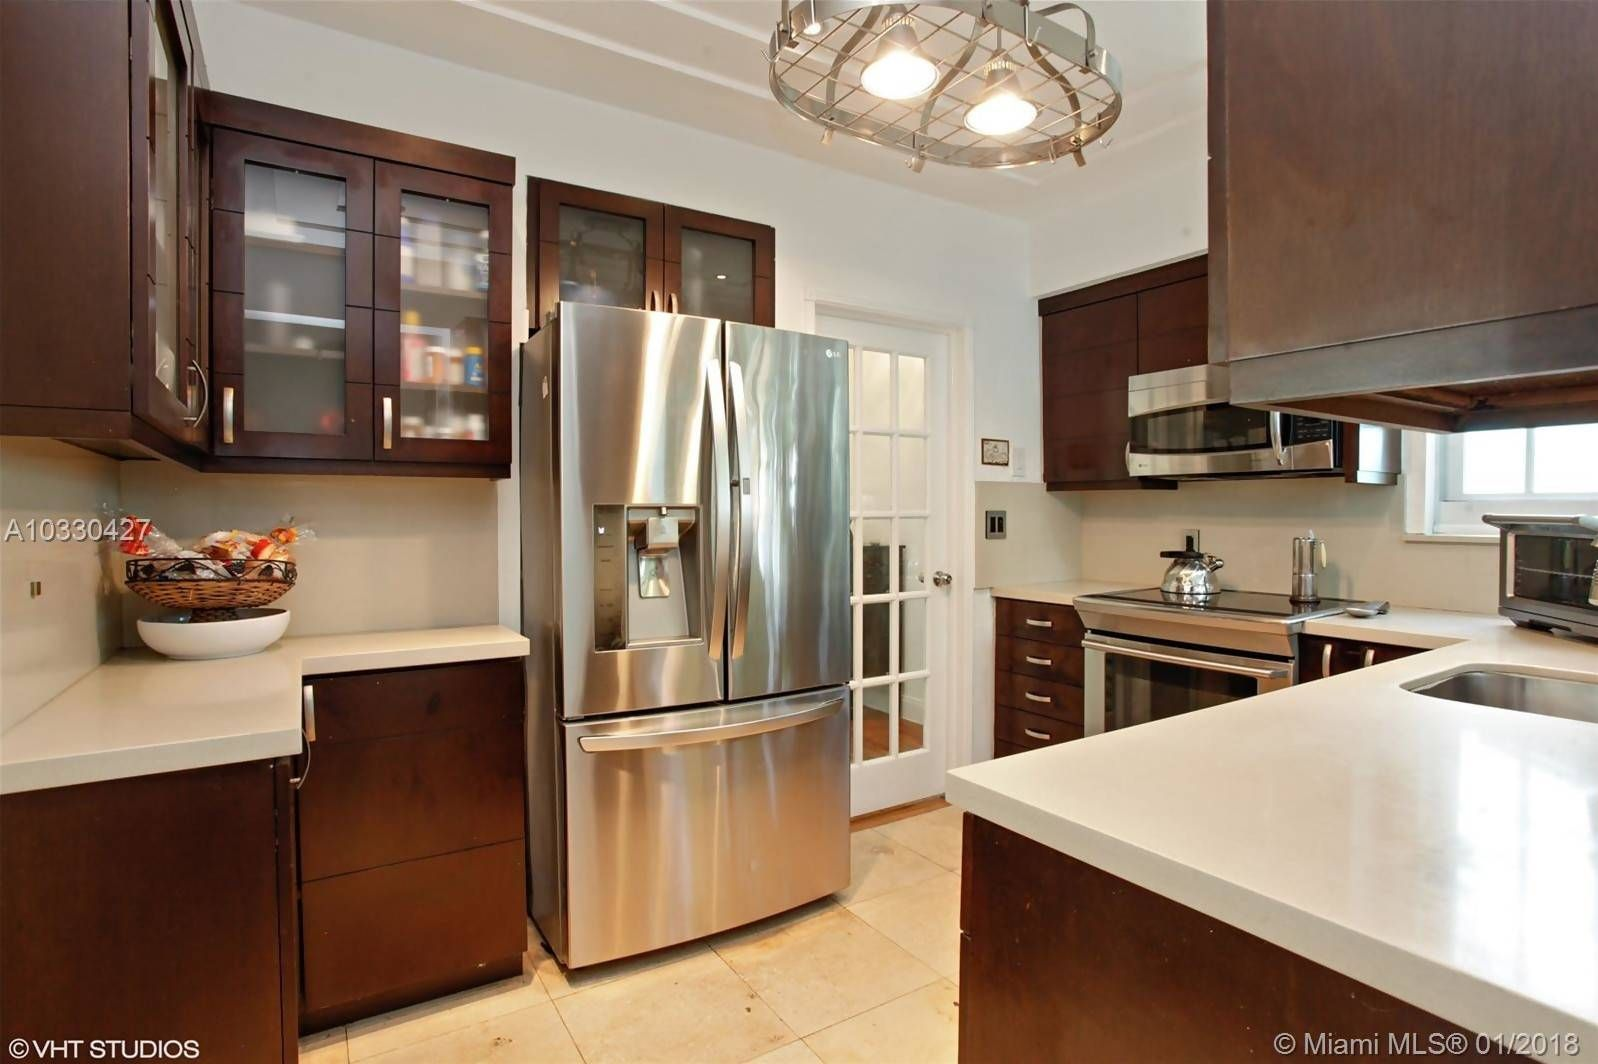 3050 Sw 1st Ave Miami Fl 33129 With Images Sleek Kitchen New Countertops Open Houses Today